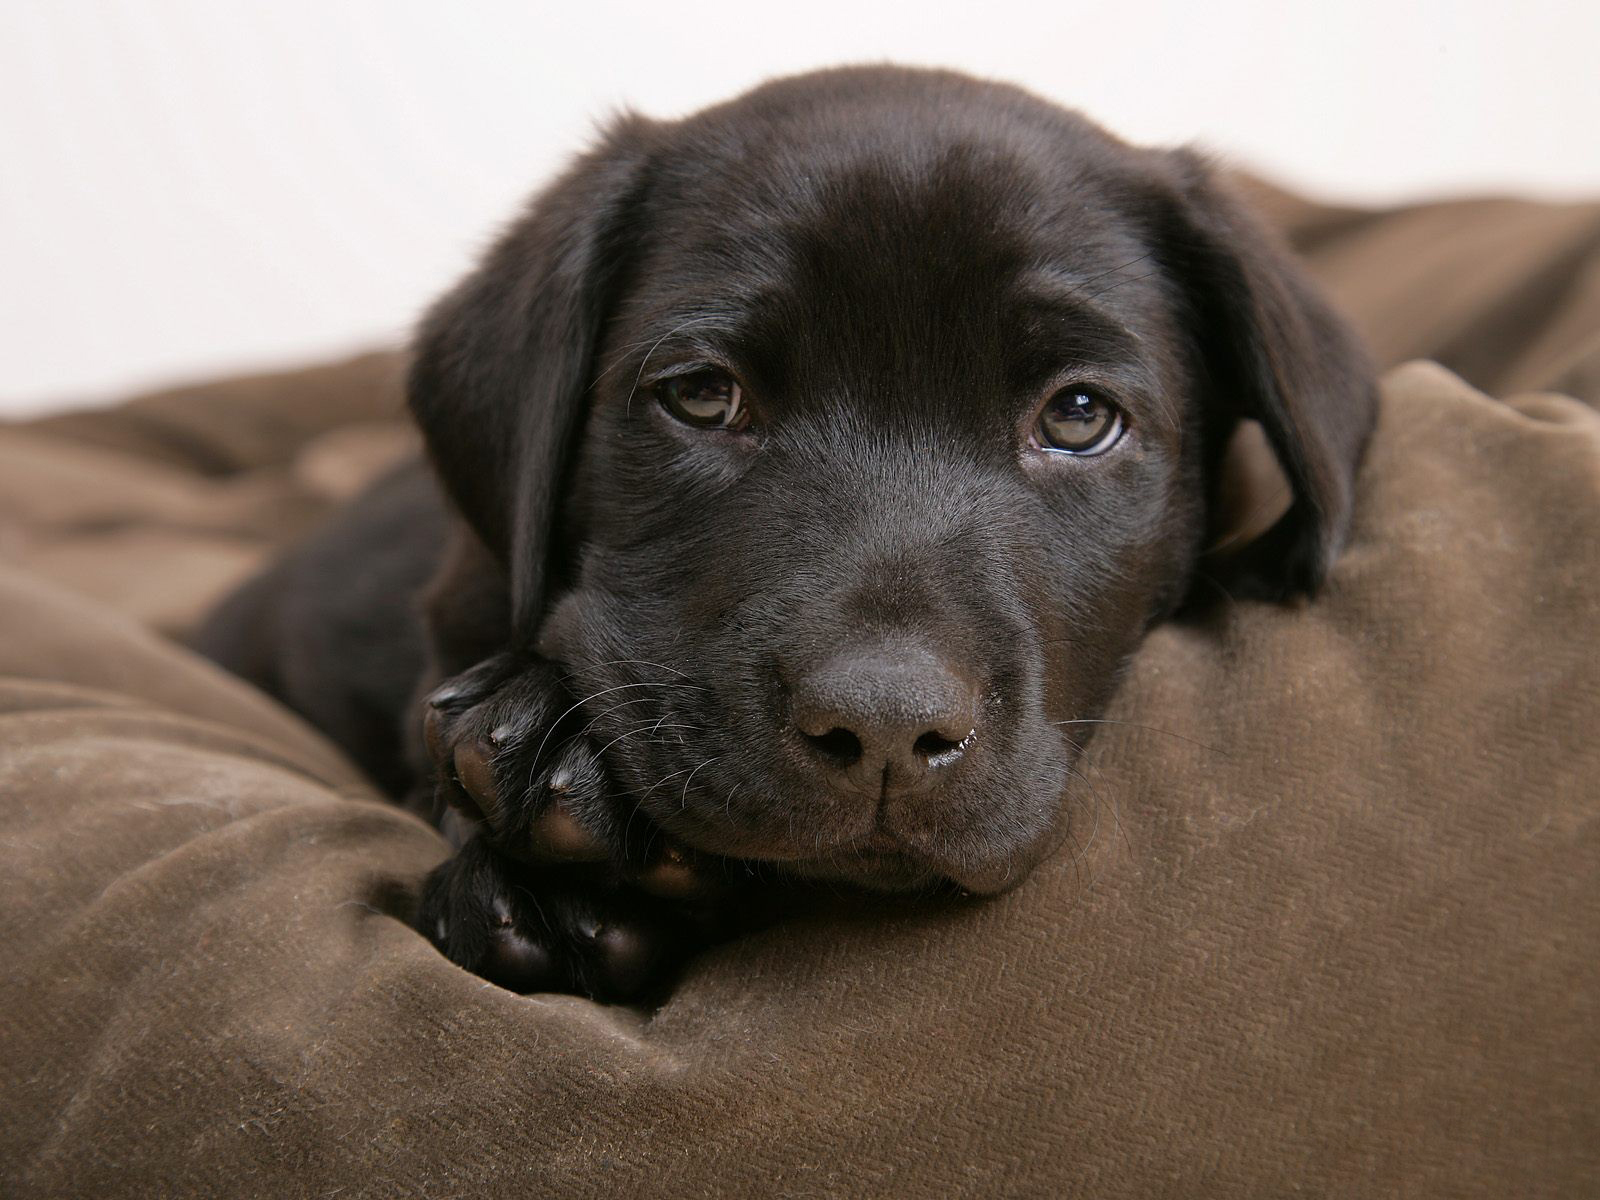 Little labrador   Puppies Wallpaper 14749010 1600x1200